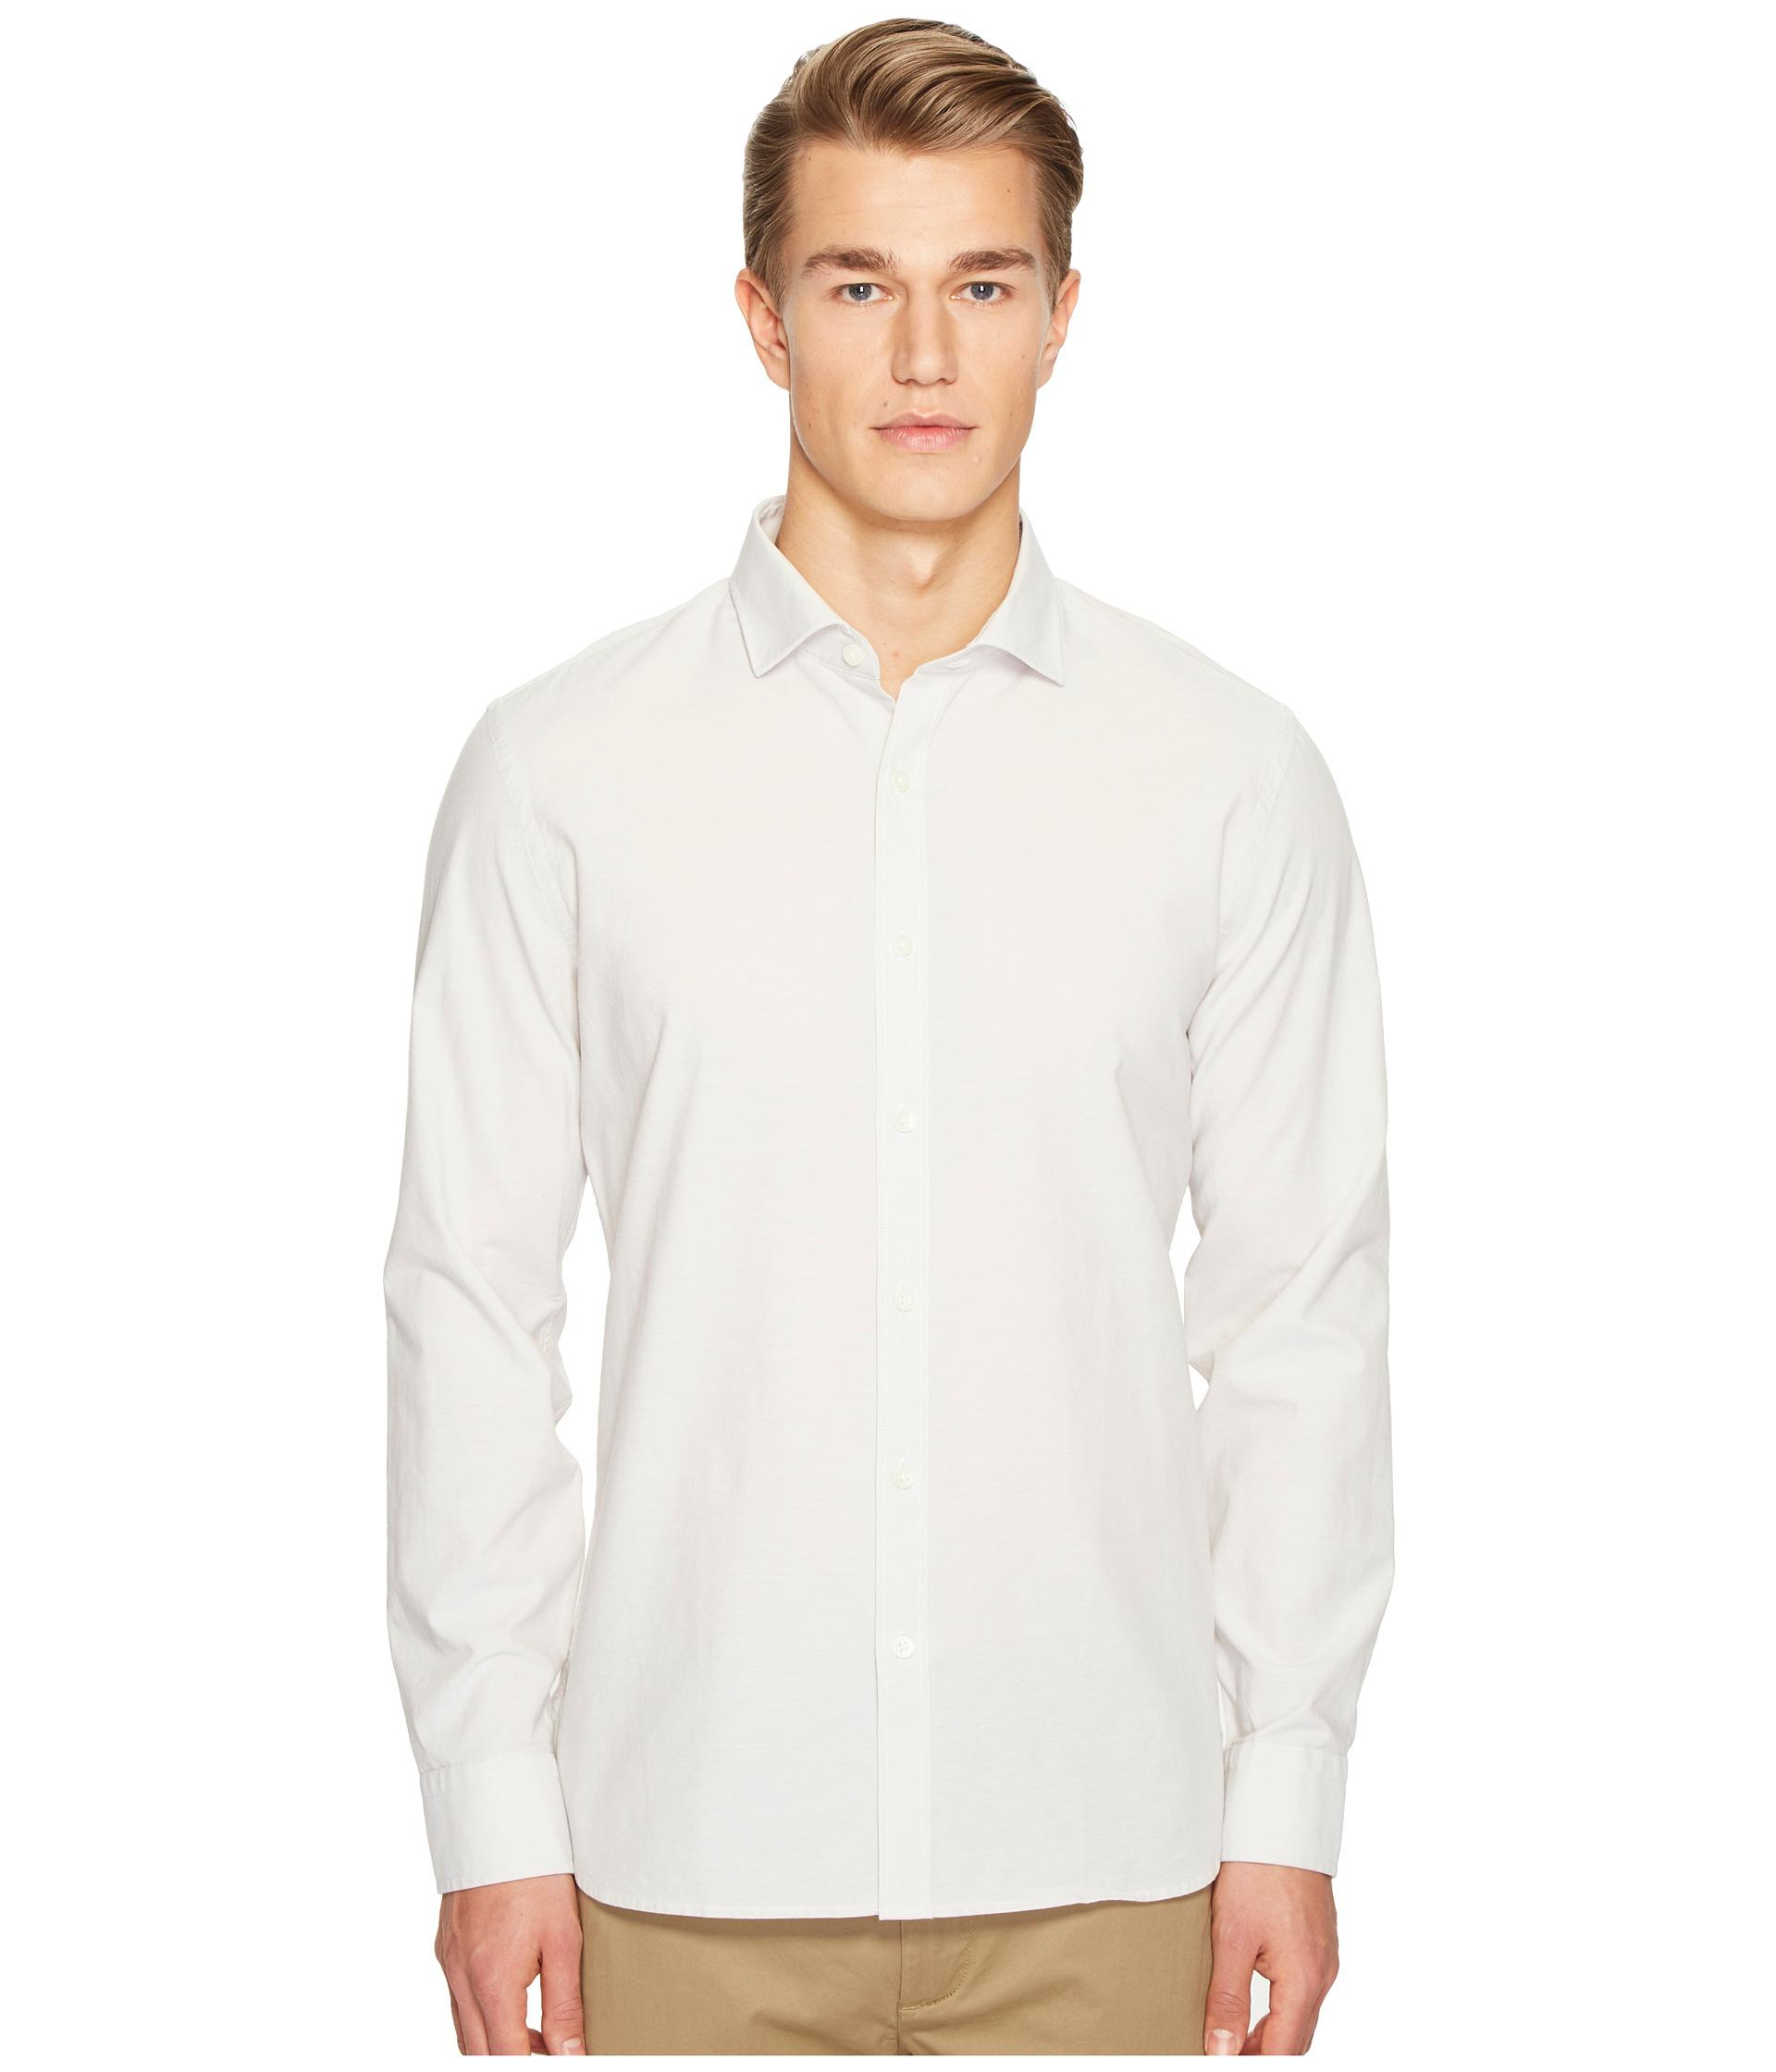 Jack spade chambray spread collar shirt in natural for men for Men s spread collar shirts